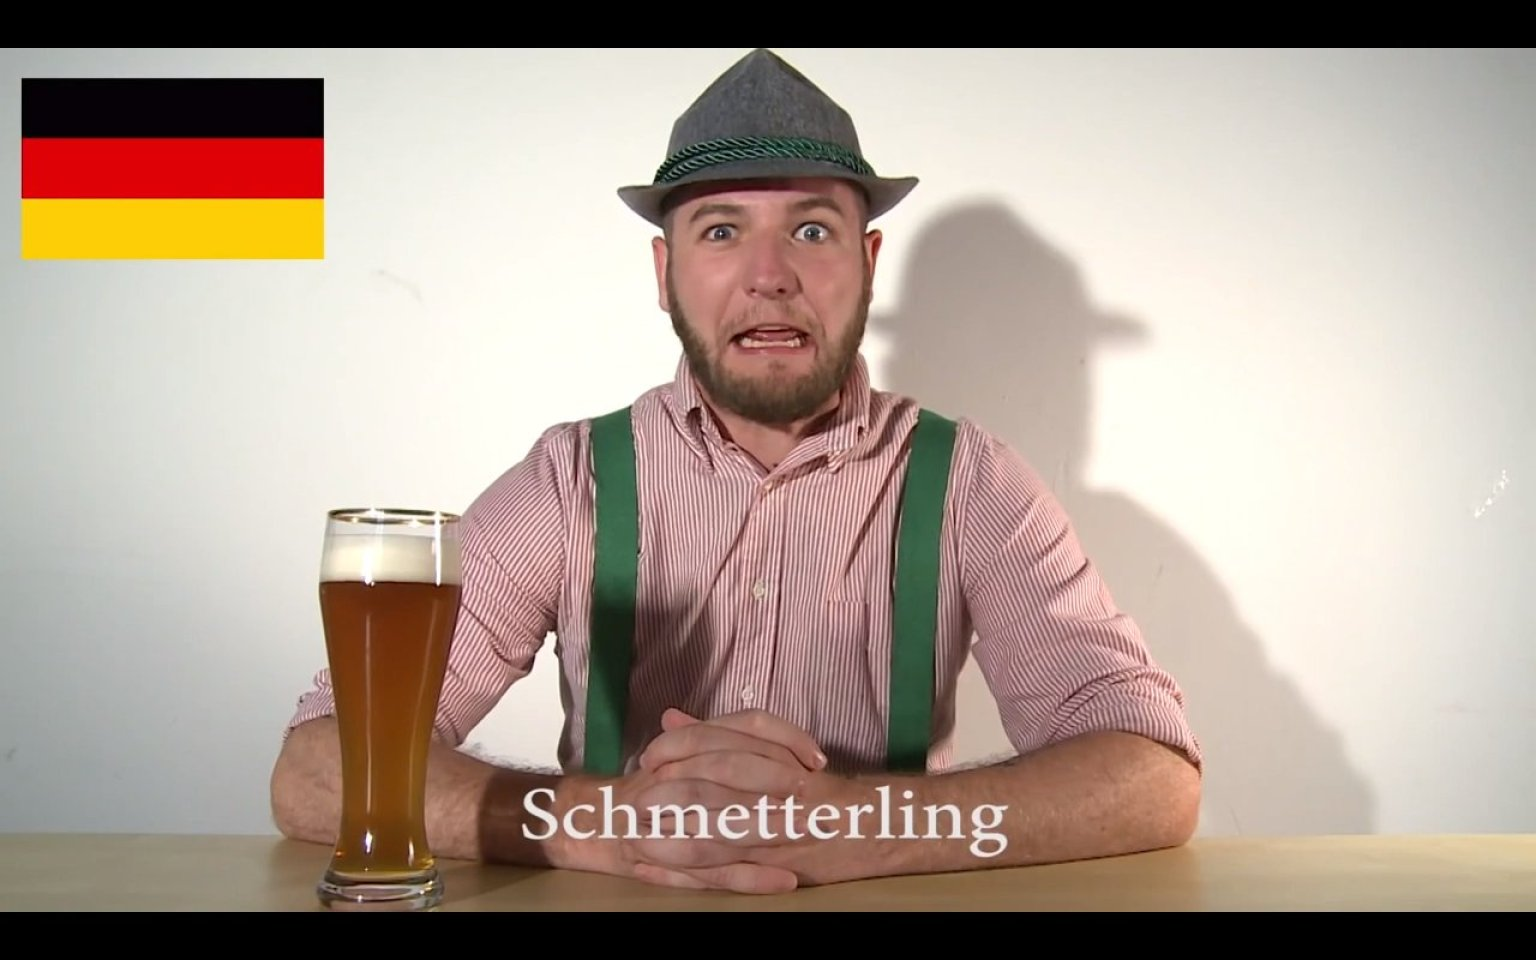 why is usually a language like german which means harsh